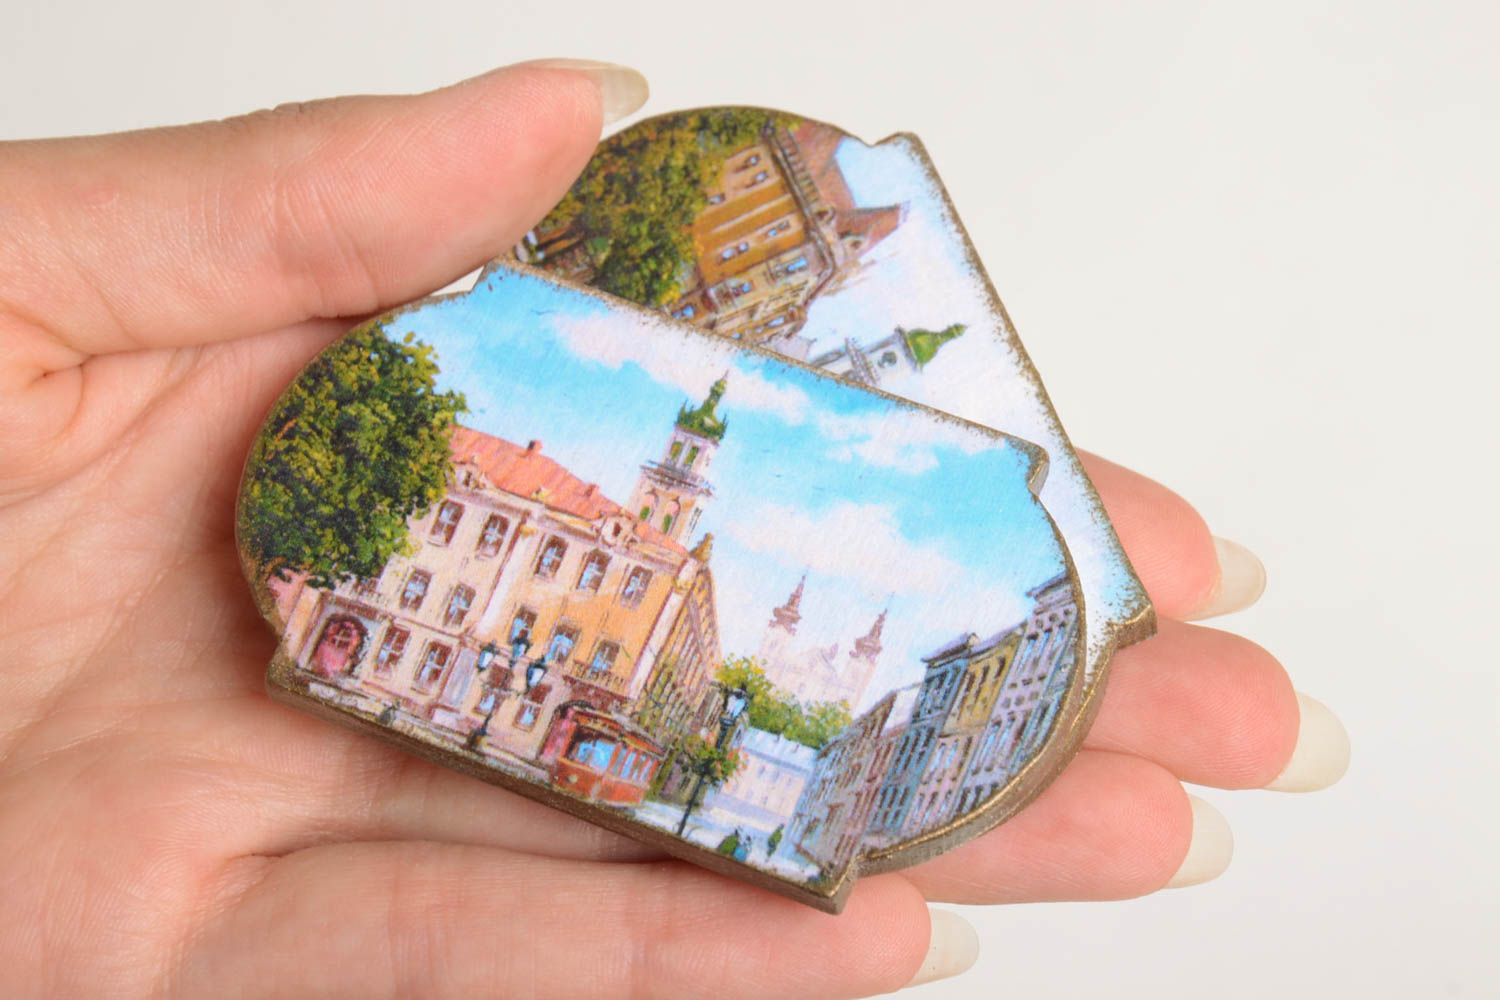 Handmade fridge magnet 2 pieces home decoration small gifts decorative use only photo 4